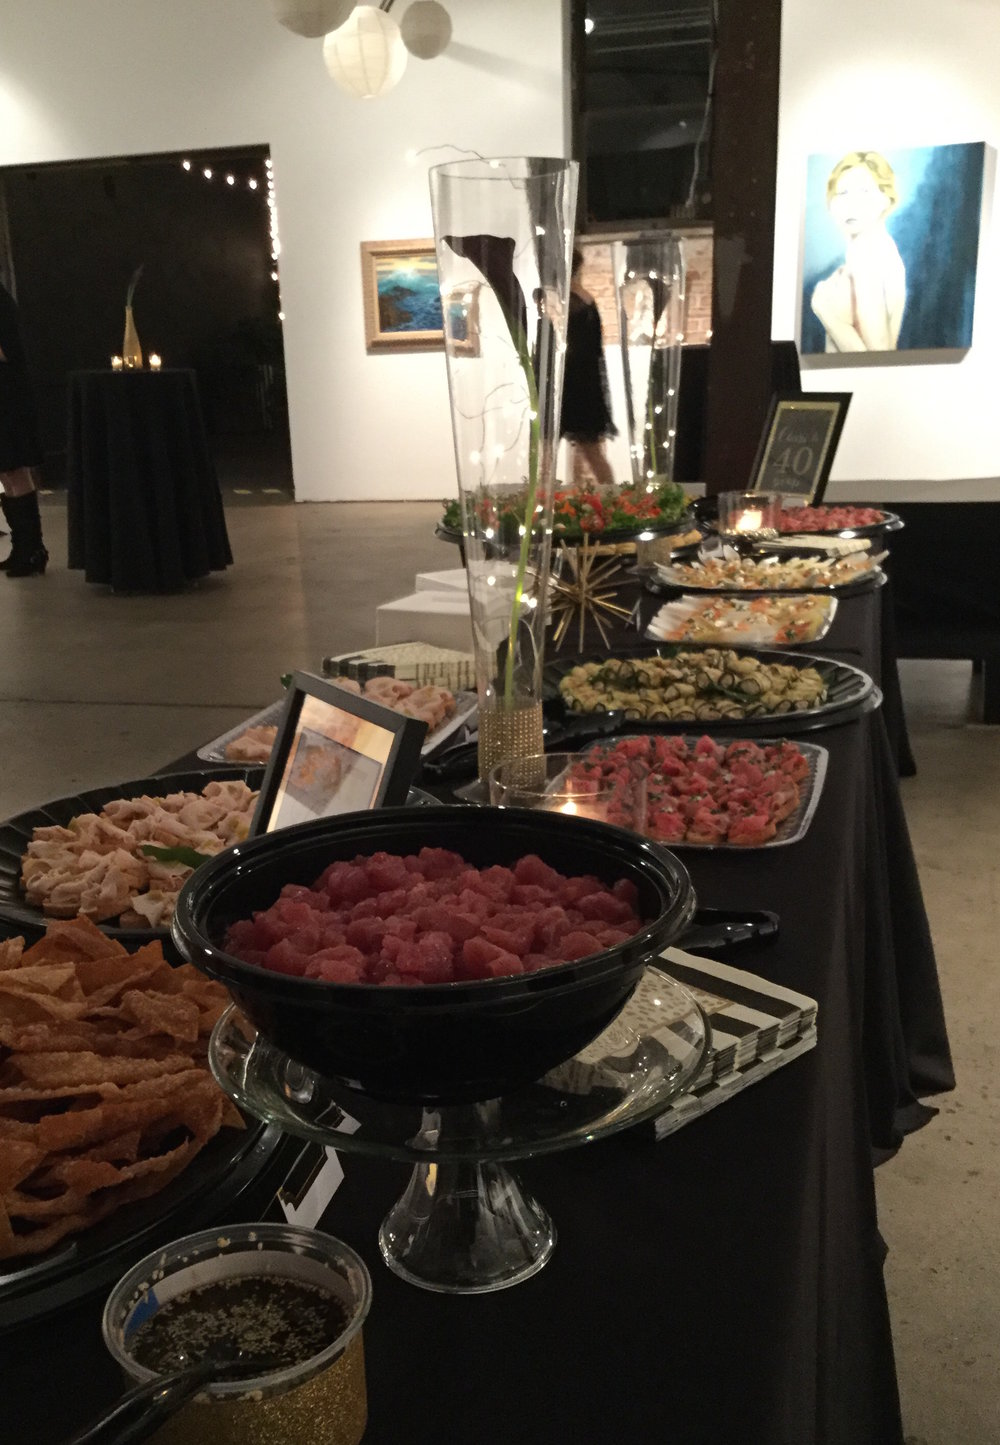 40th Birthday   Venue:  The Liberty Art Gallery & Event Space, Long Beach   Catering:  Olive Gourmet Grocer   Over The Moon Package:  Full Design, Planning, & Coordination